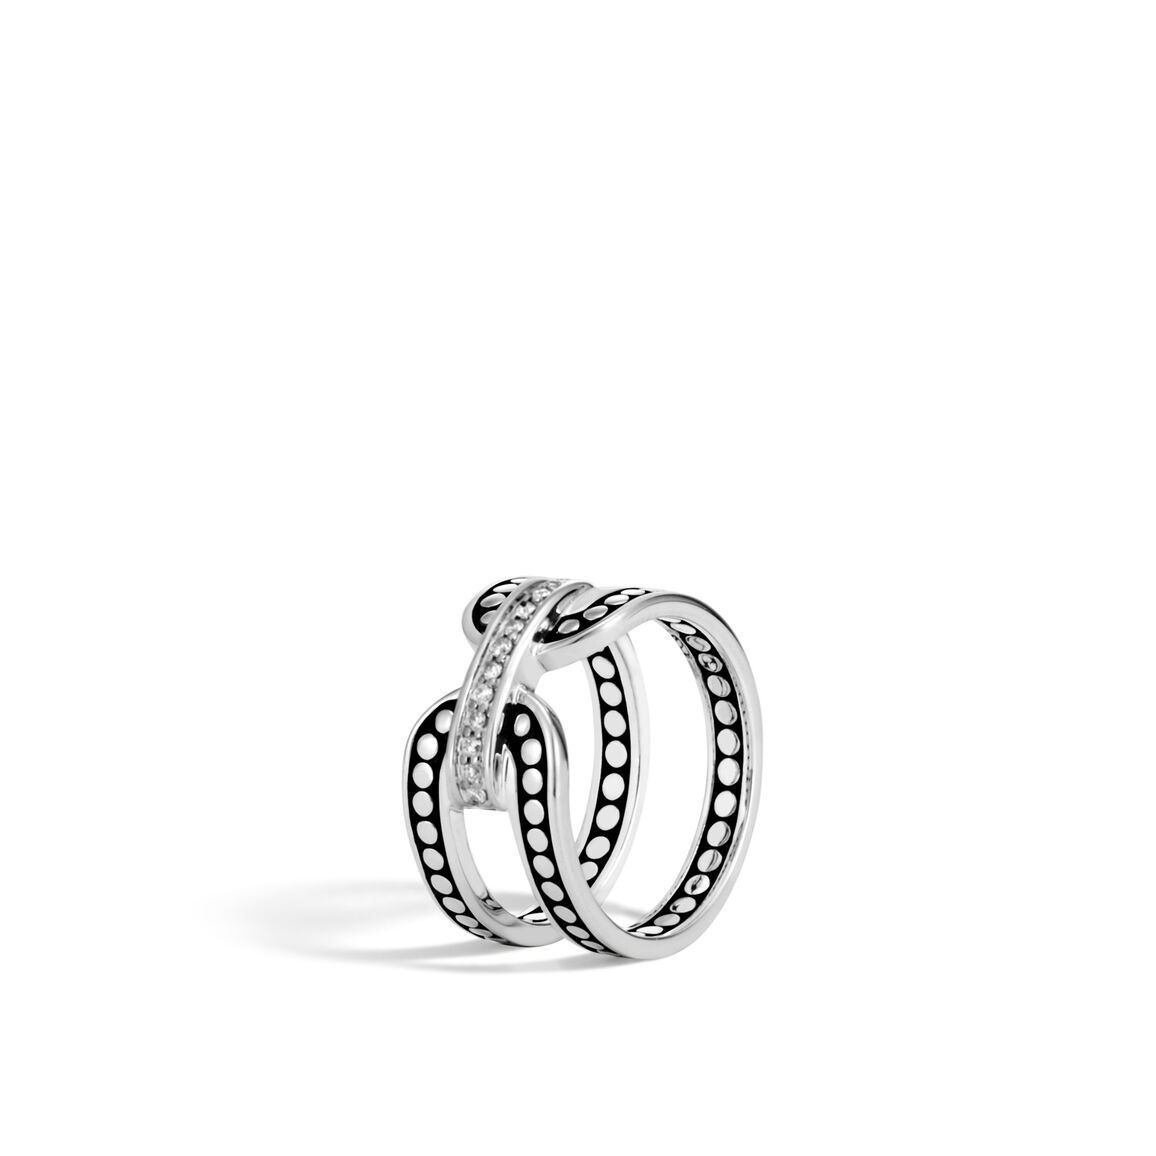 Dot 10.5MM Band Ring in Silver with Diamonds